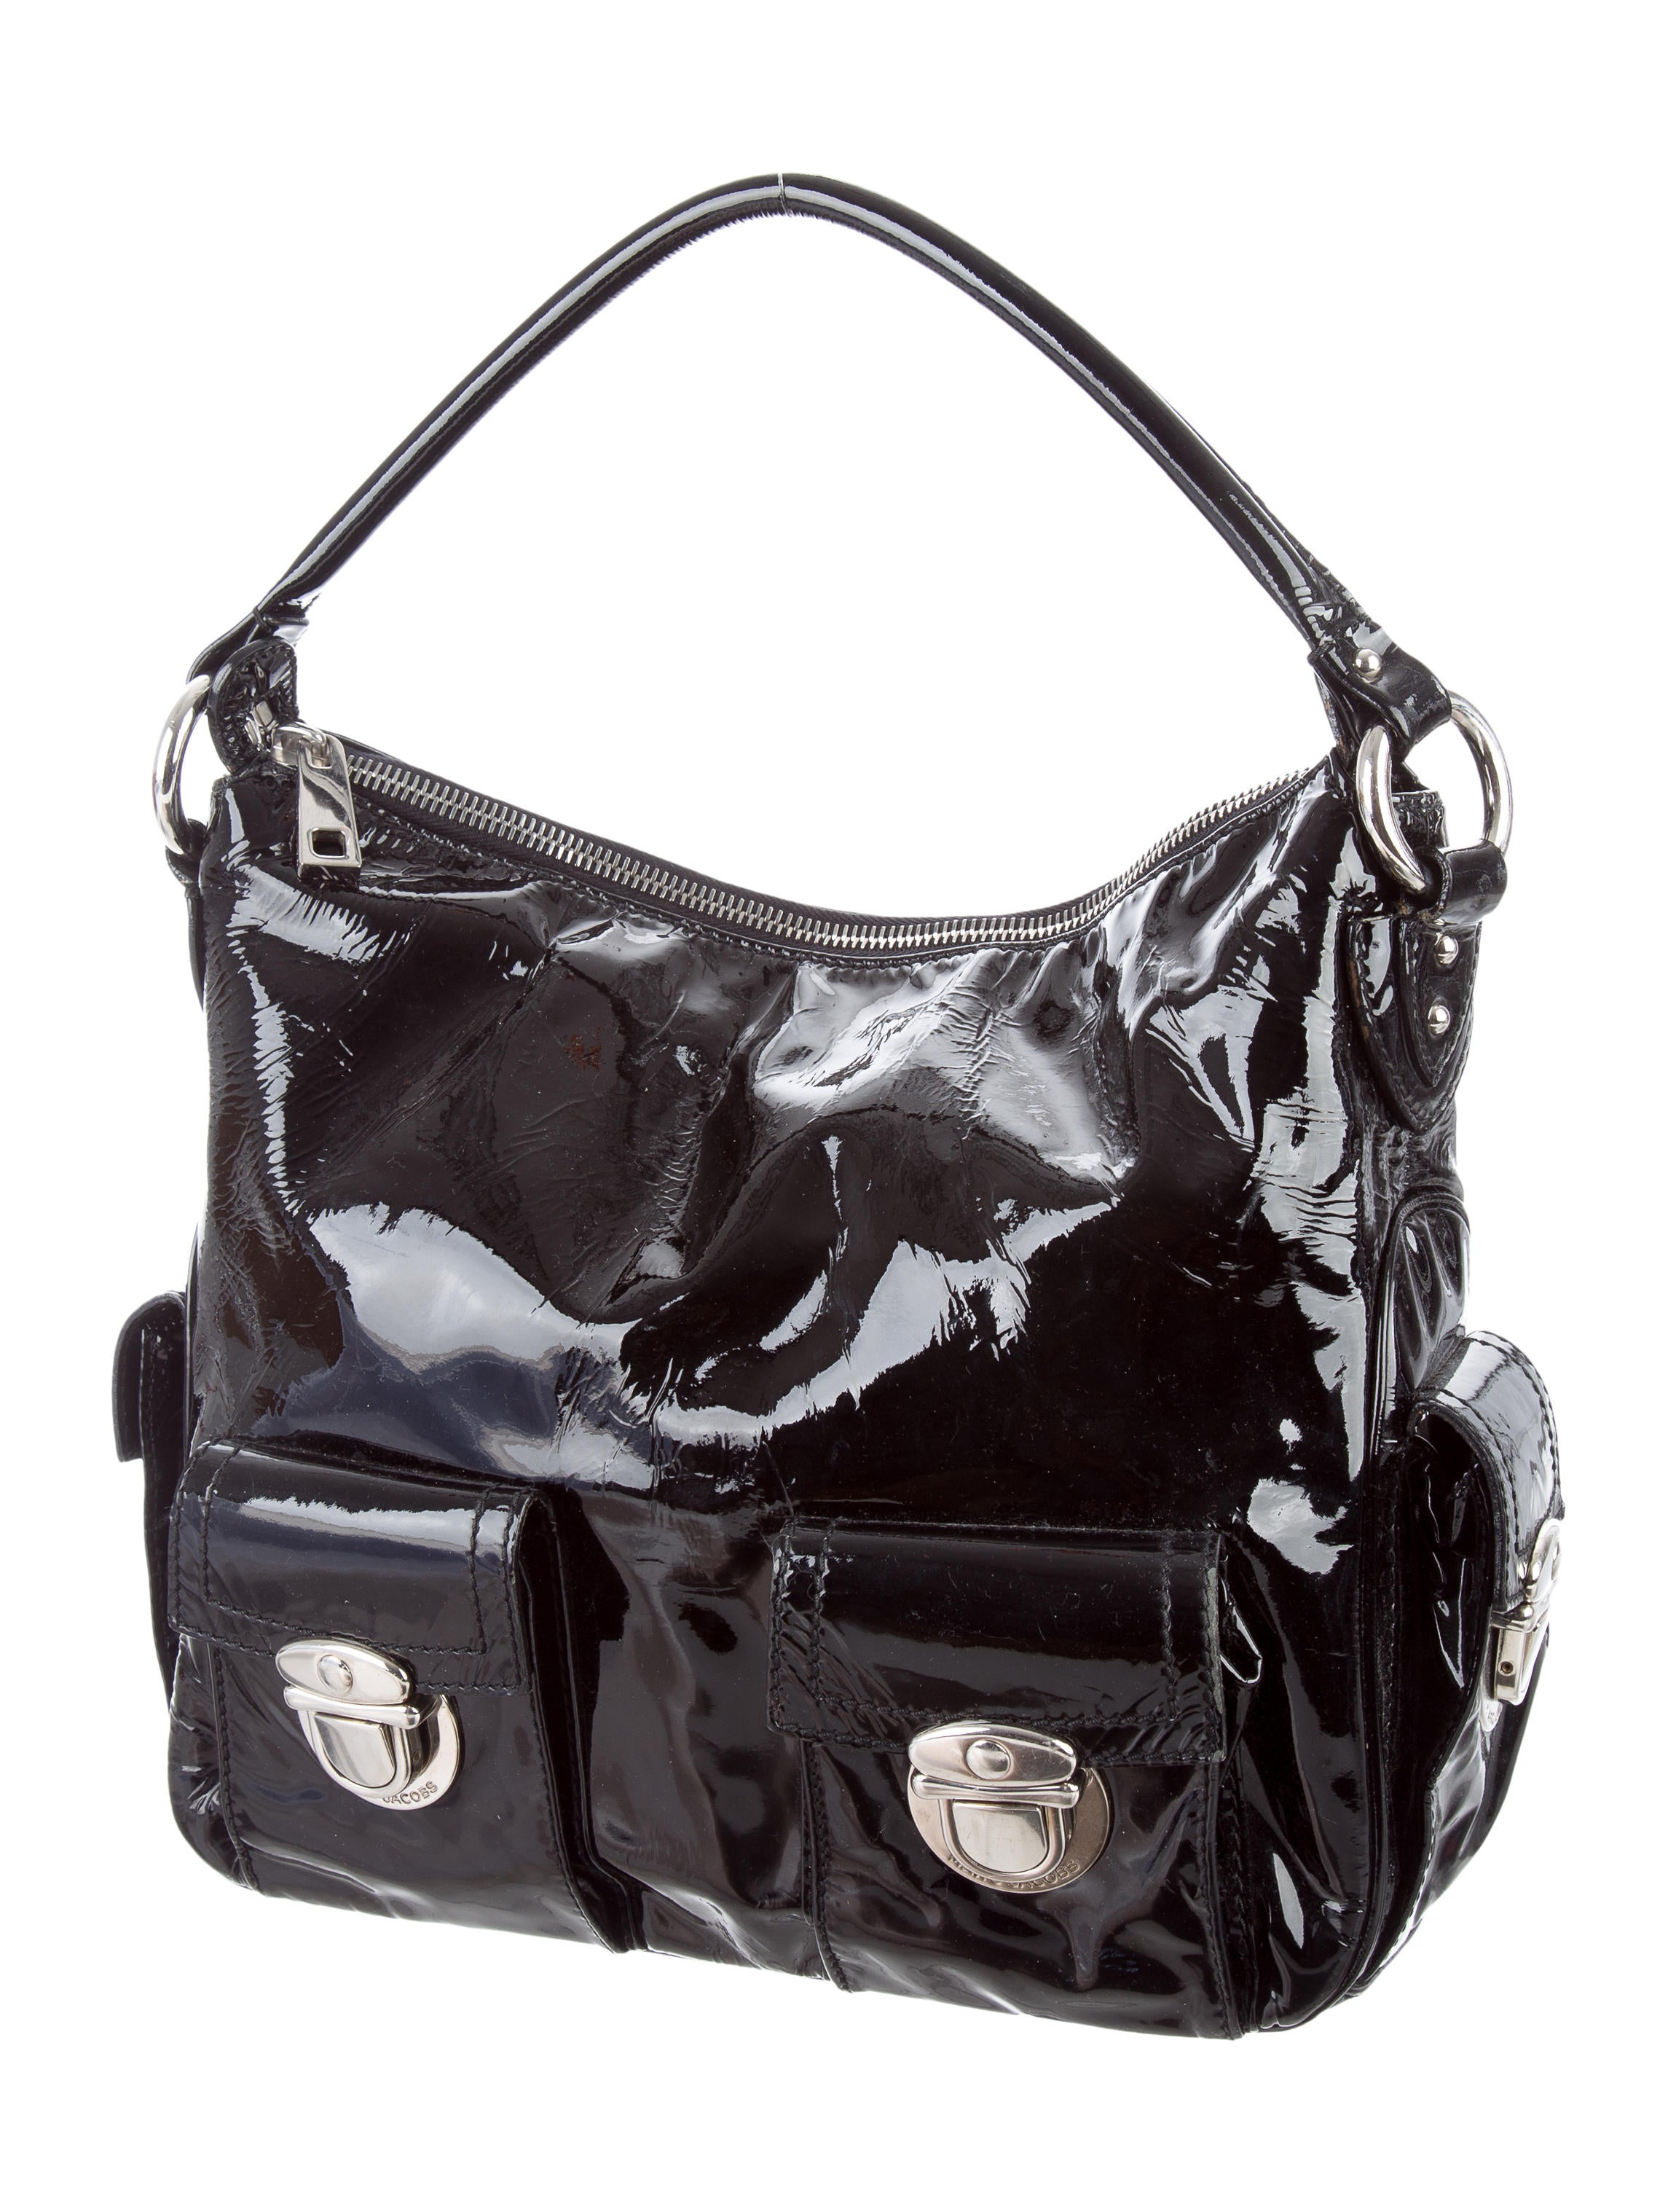 Marc Jacobs Hobo Laukku : Marc jacobs blake hobo bag handbags mar the